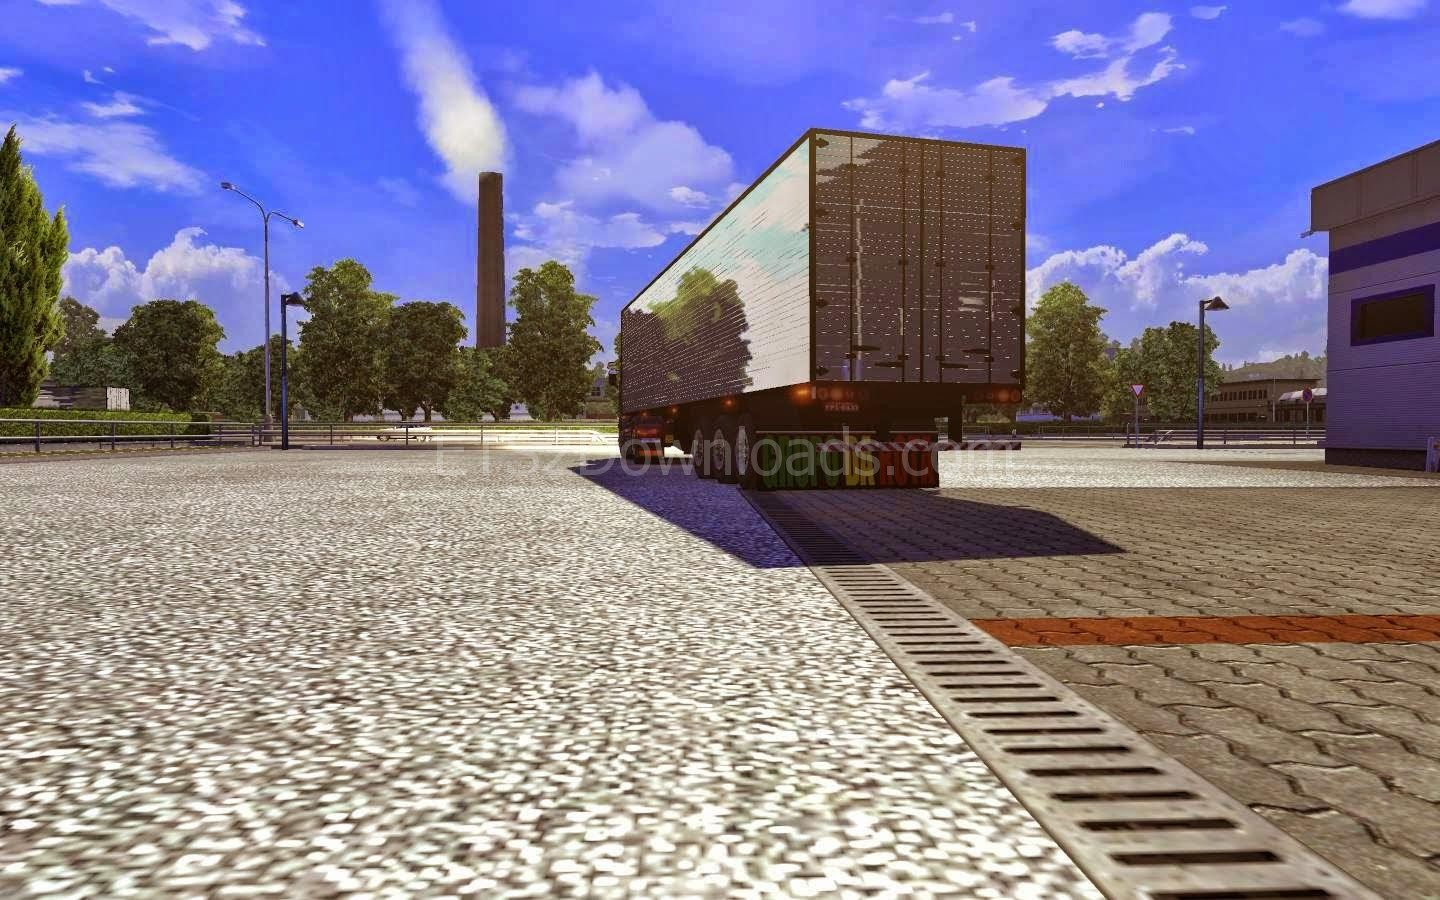 trailer-pack-by-matheus-moreira-ets2-1